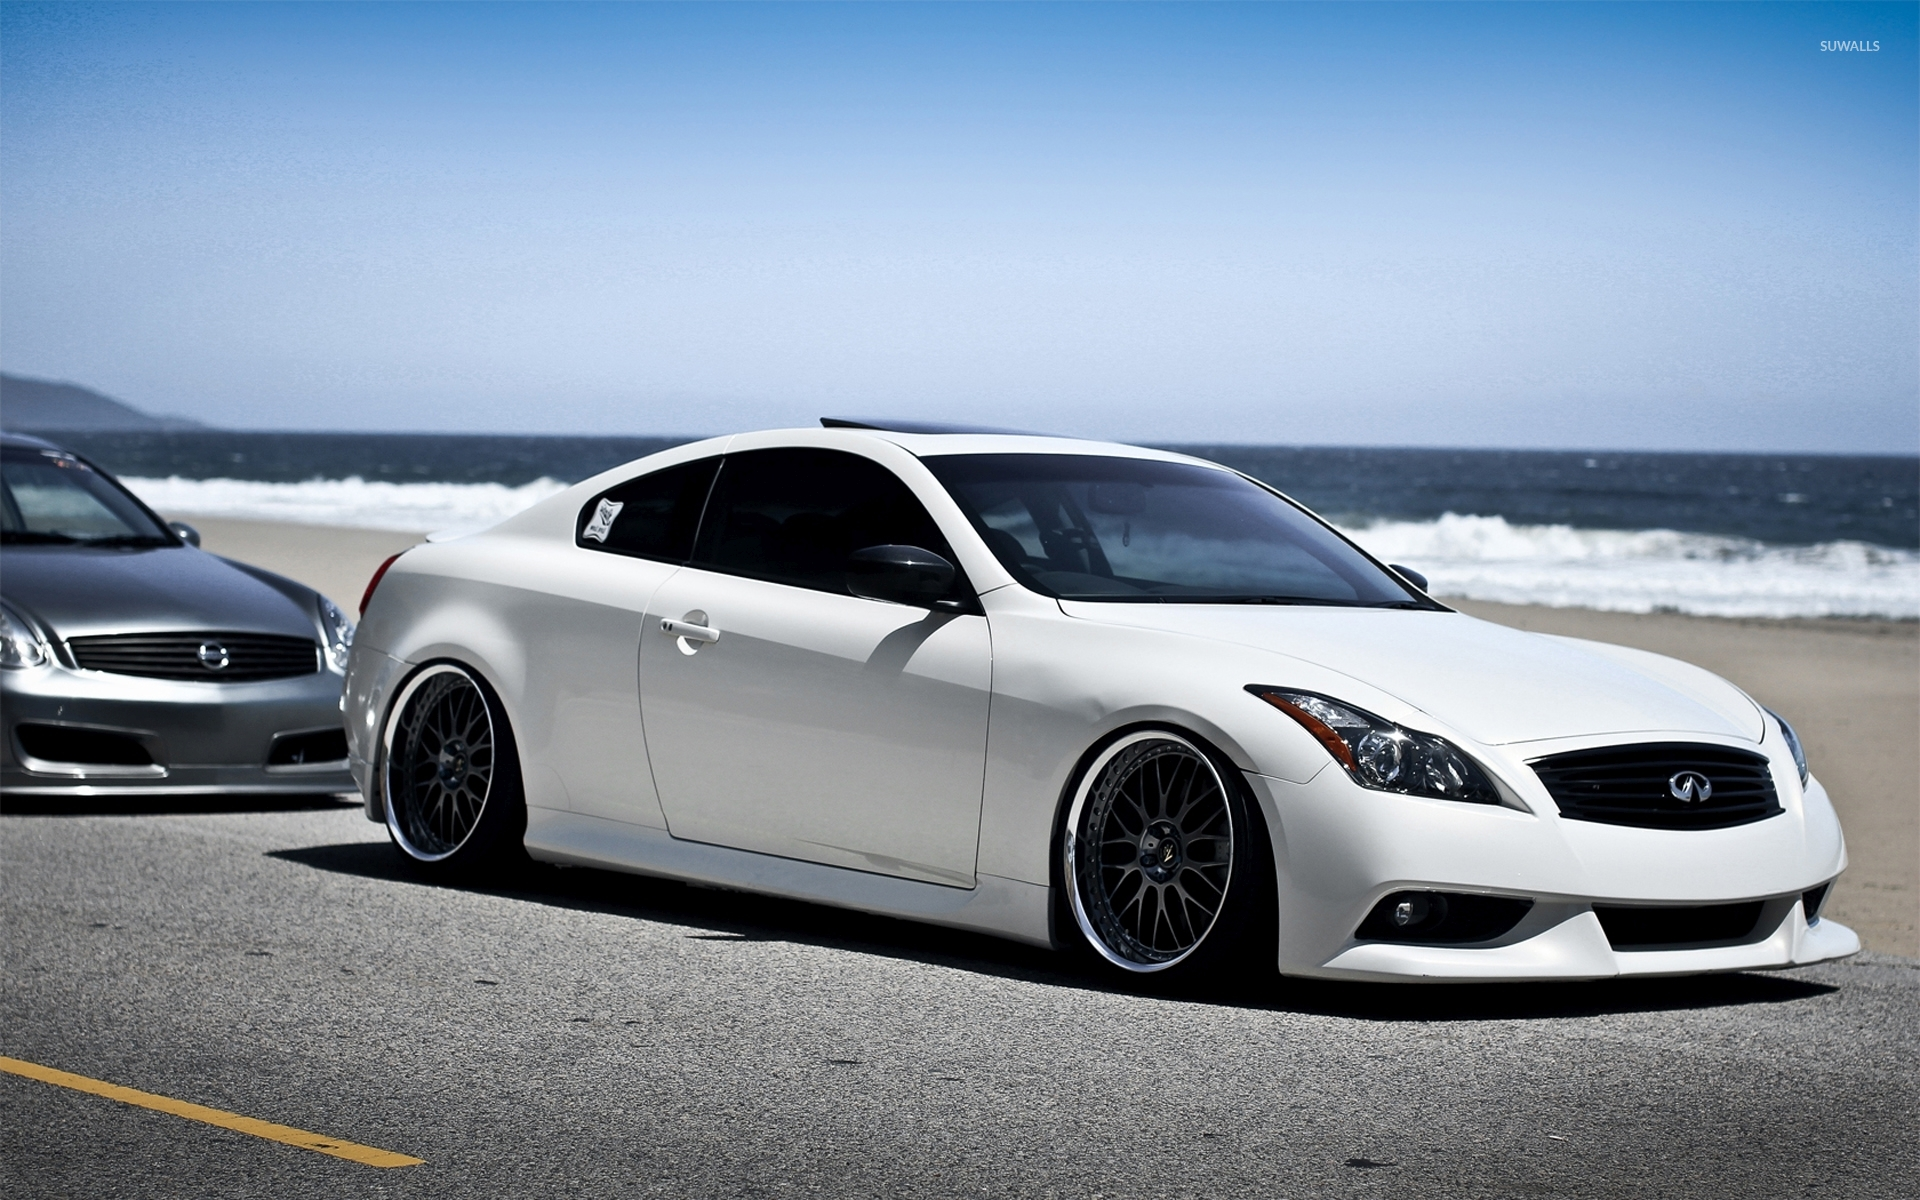 2010 infiniti g37 convertible wallpaper car wallpapers 9049 infiniti g37 s coupe wallpaper 1920x1200 jpg vanachro Choice Image